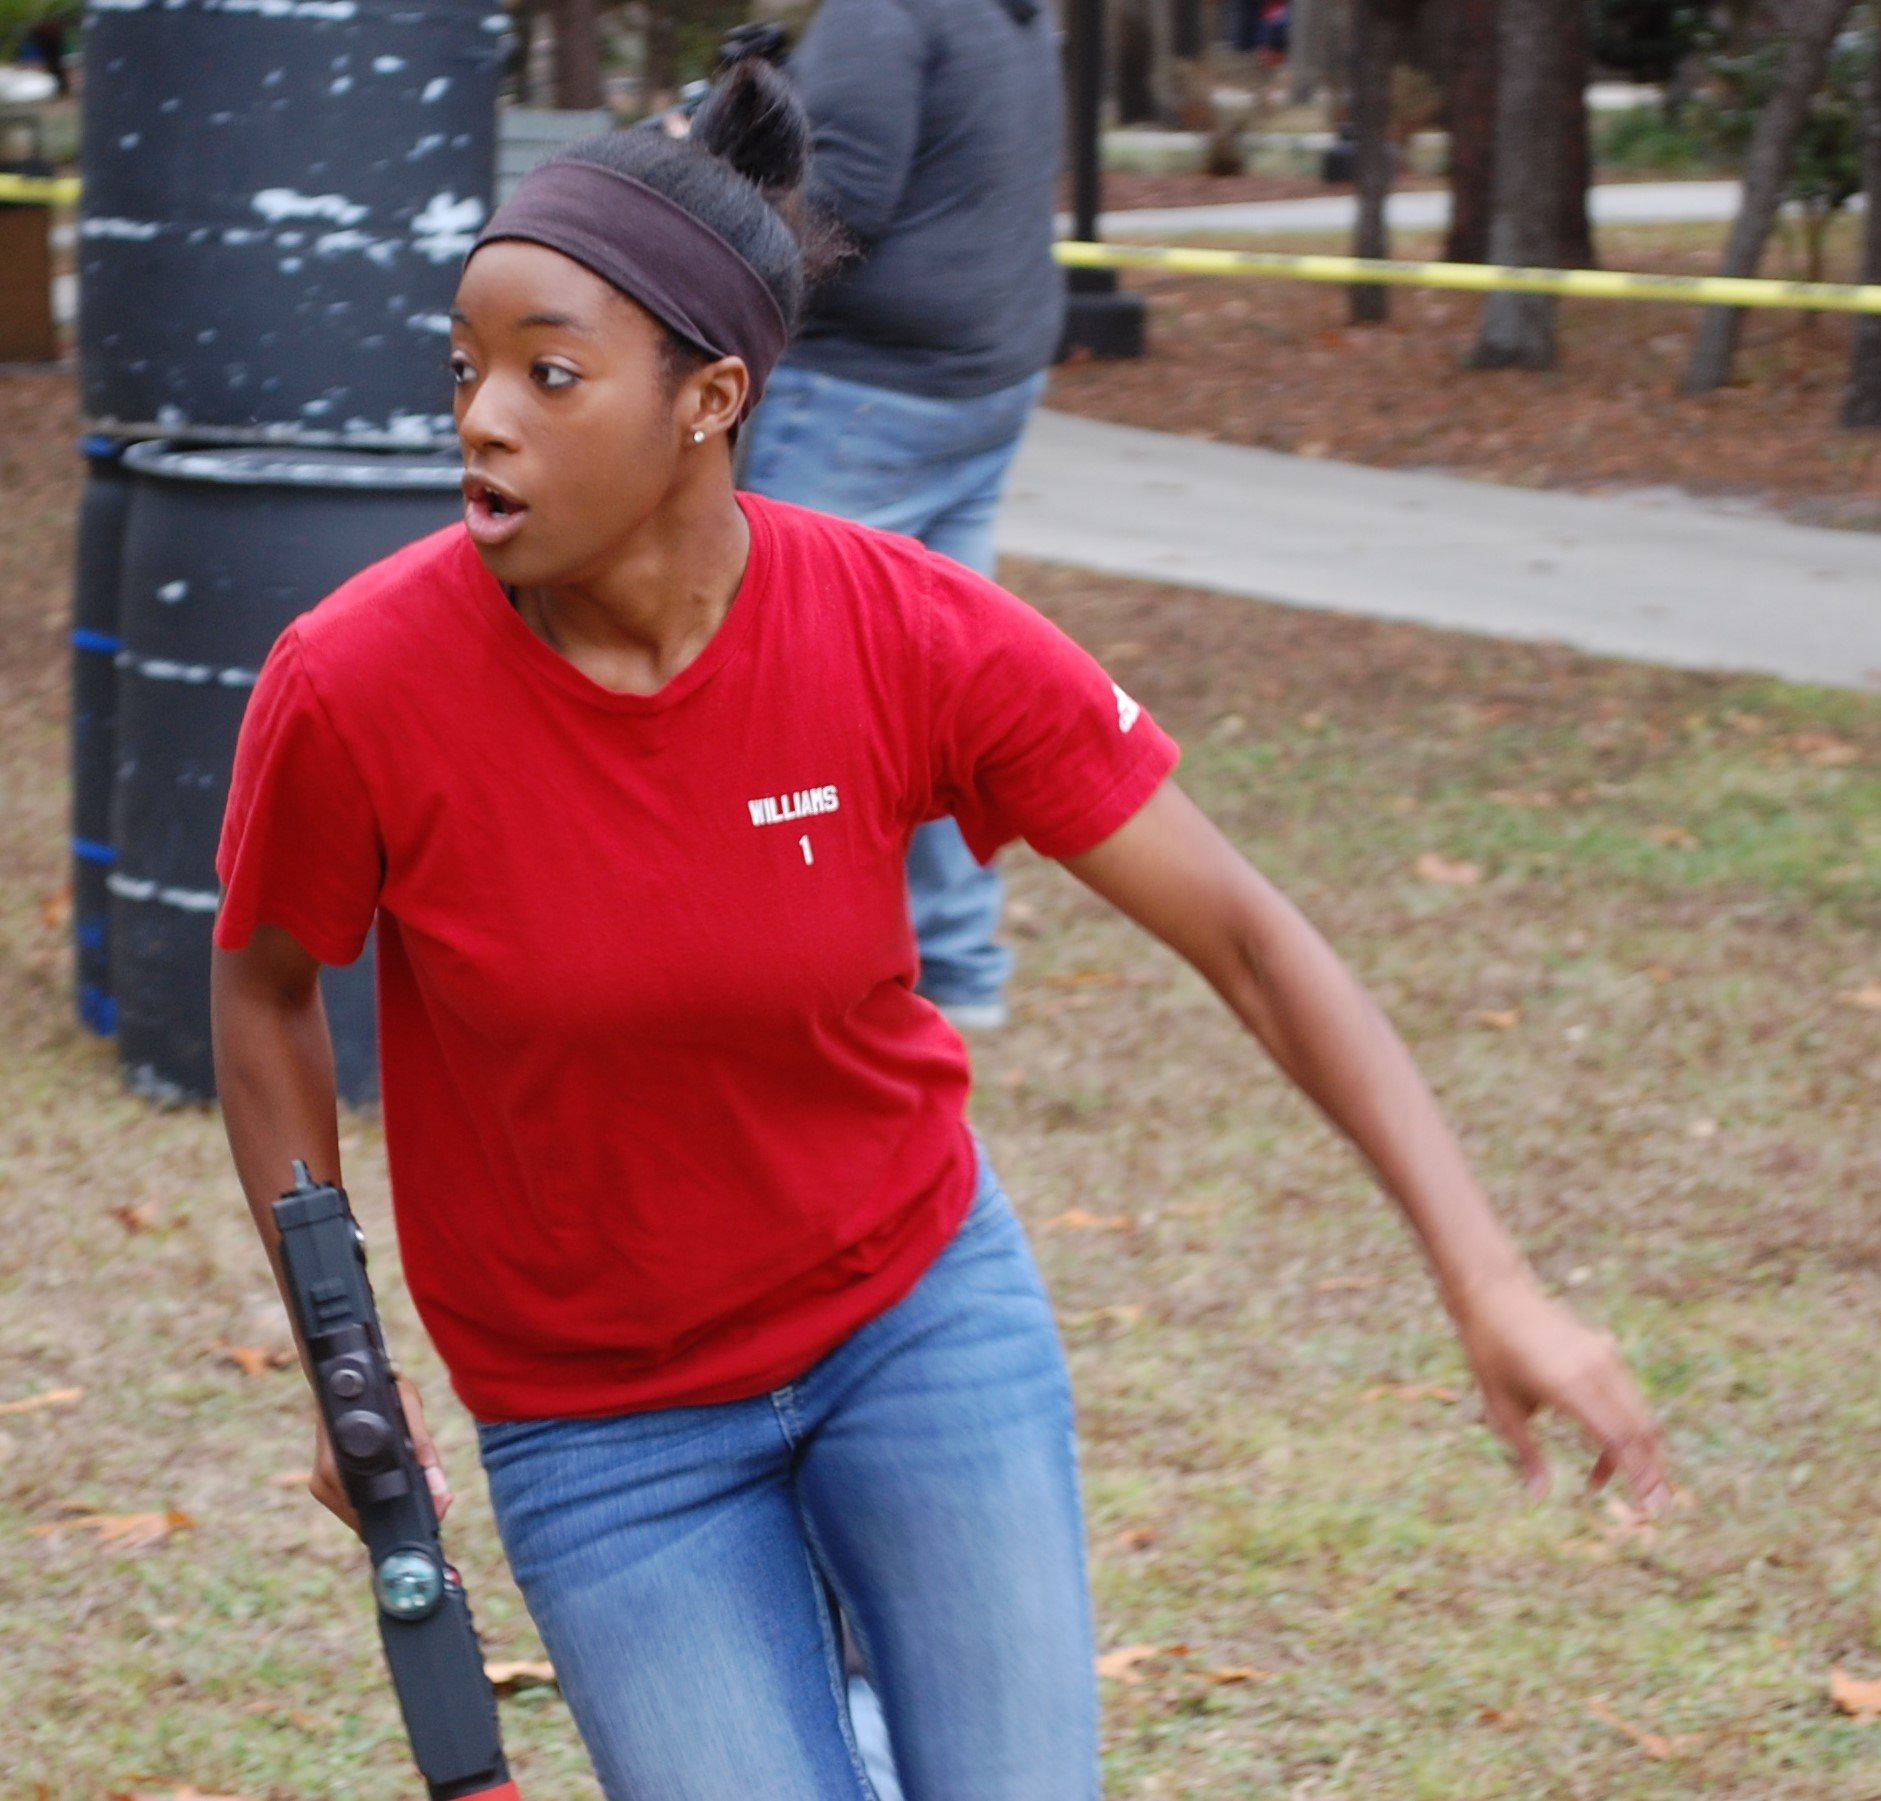 College Events in Florida - Stealth Mobile Laser Tag (64)